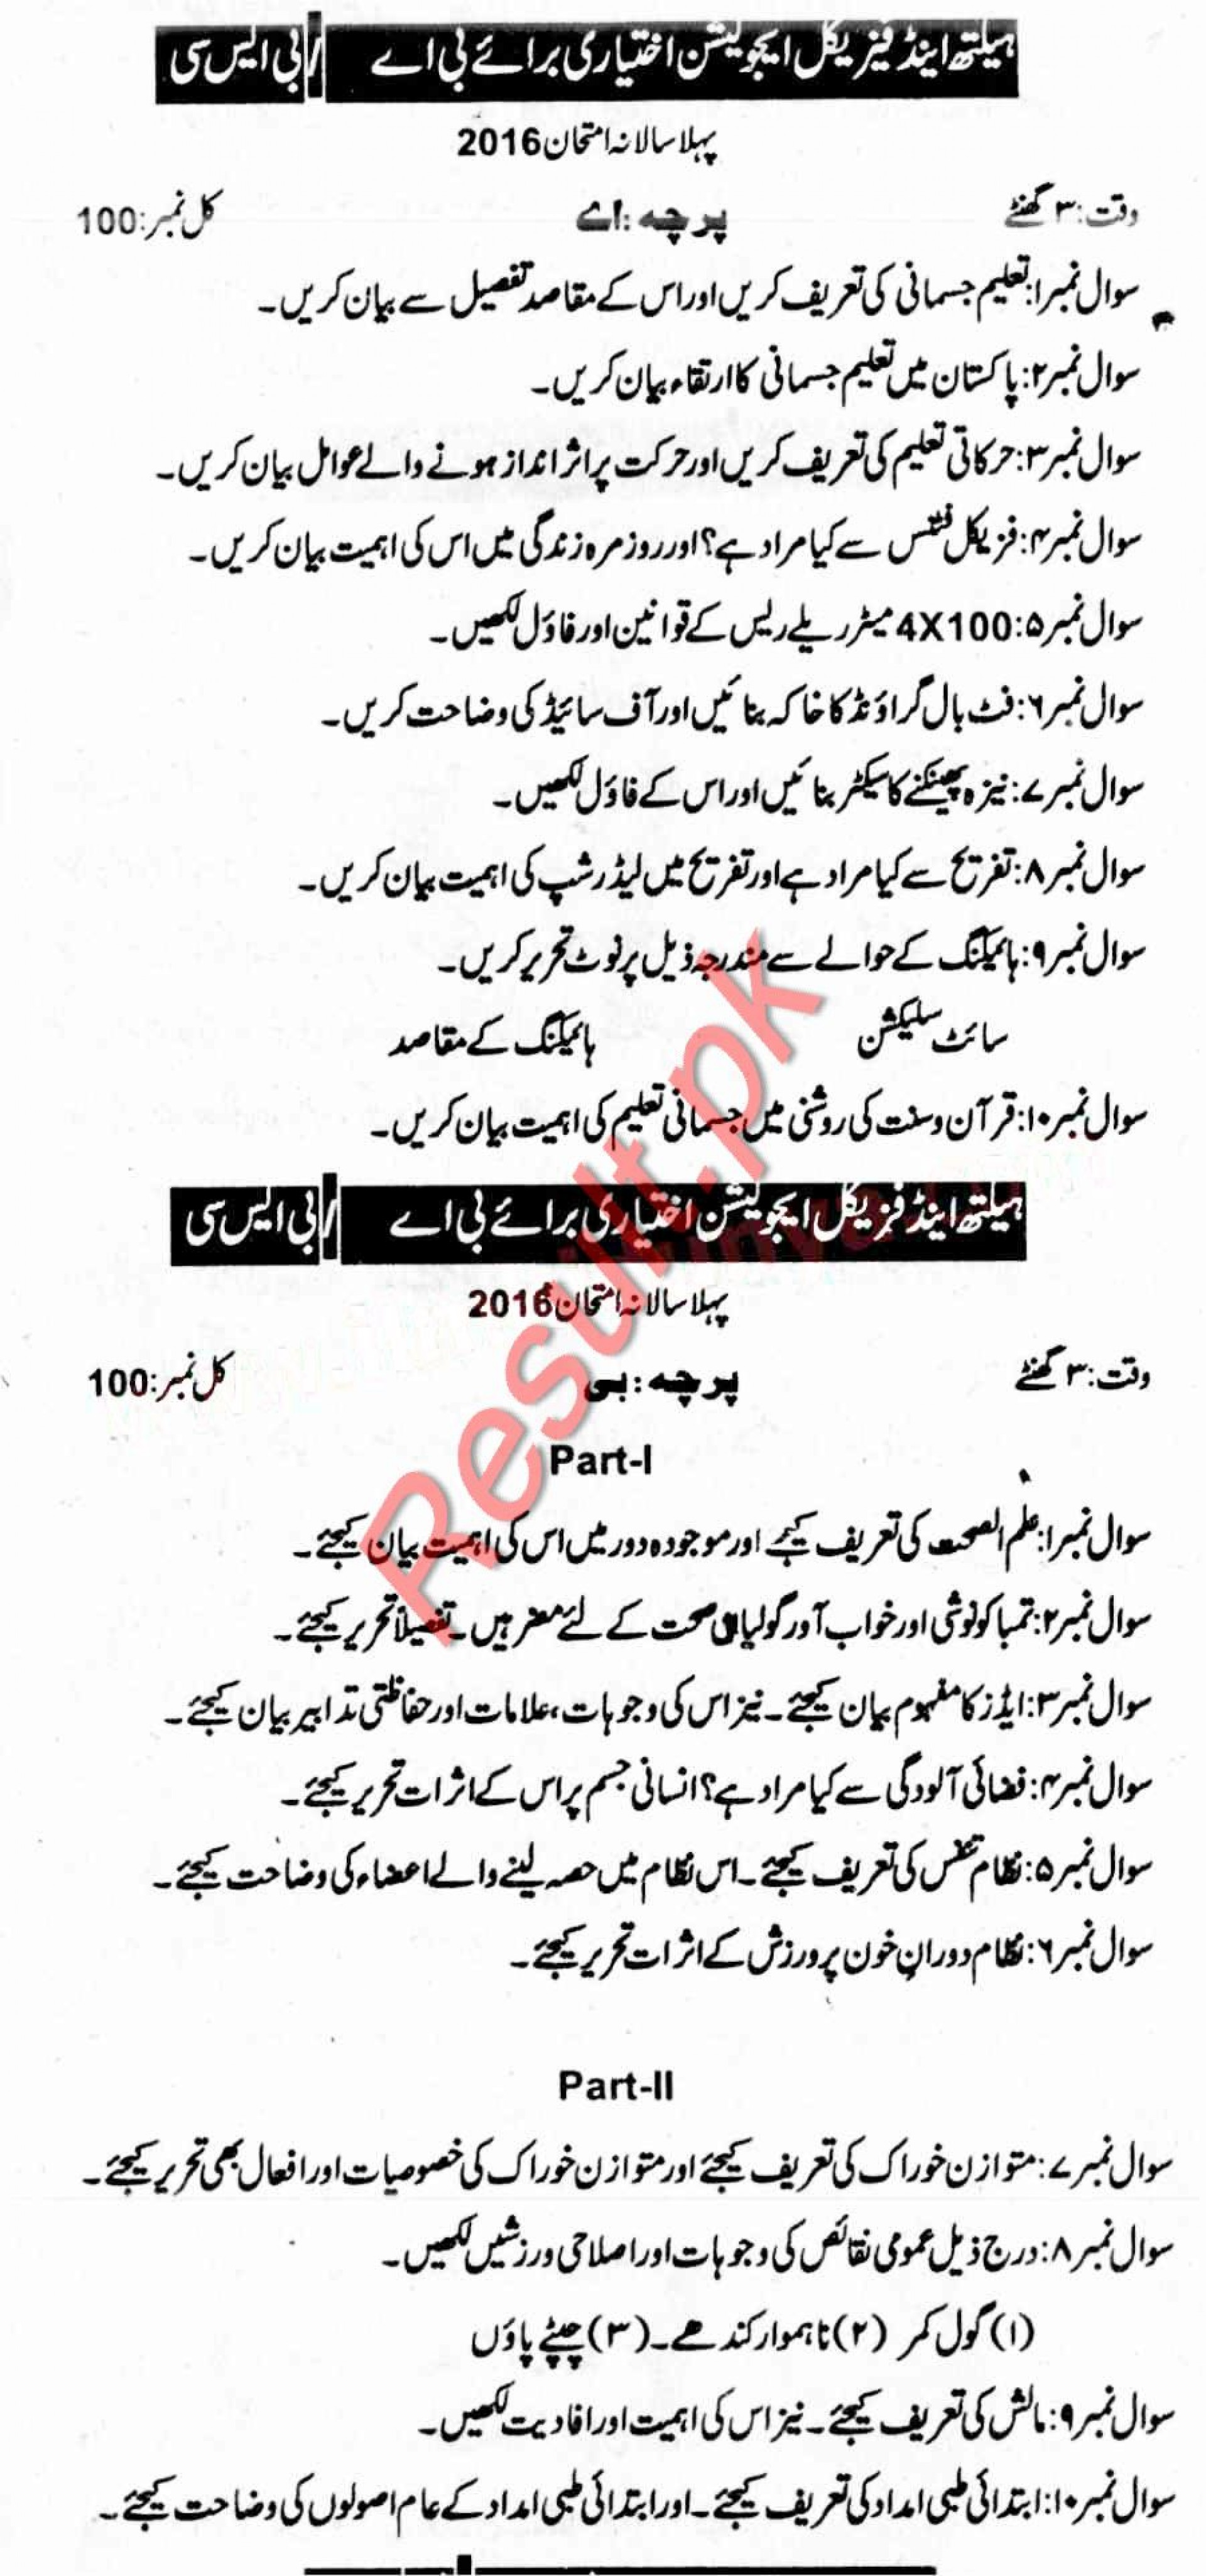 015 Research Paper Educational Past Exam Papers Sargodha University Bsc Health Education Elective Urdu Amazing 1920